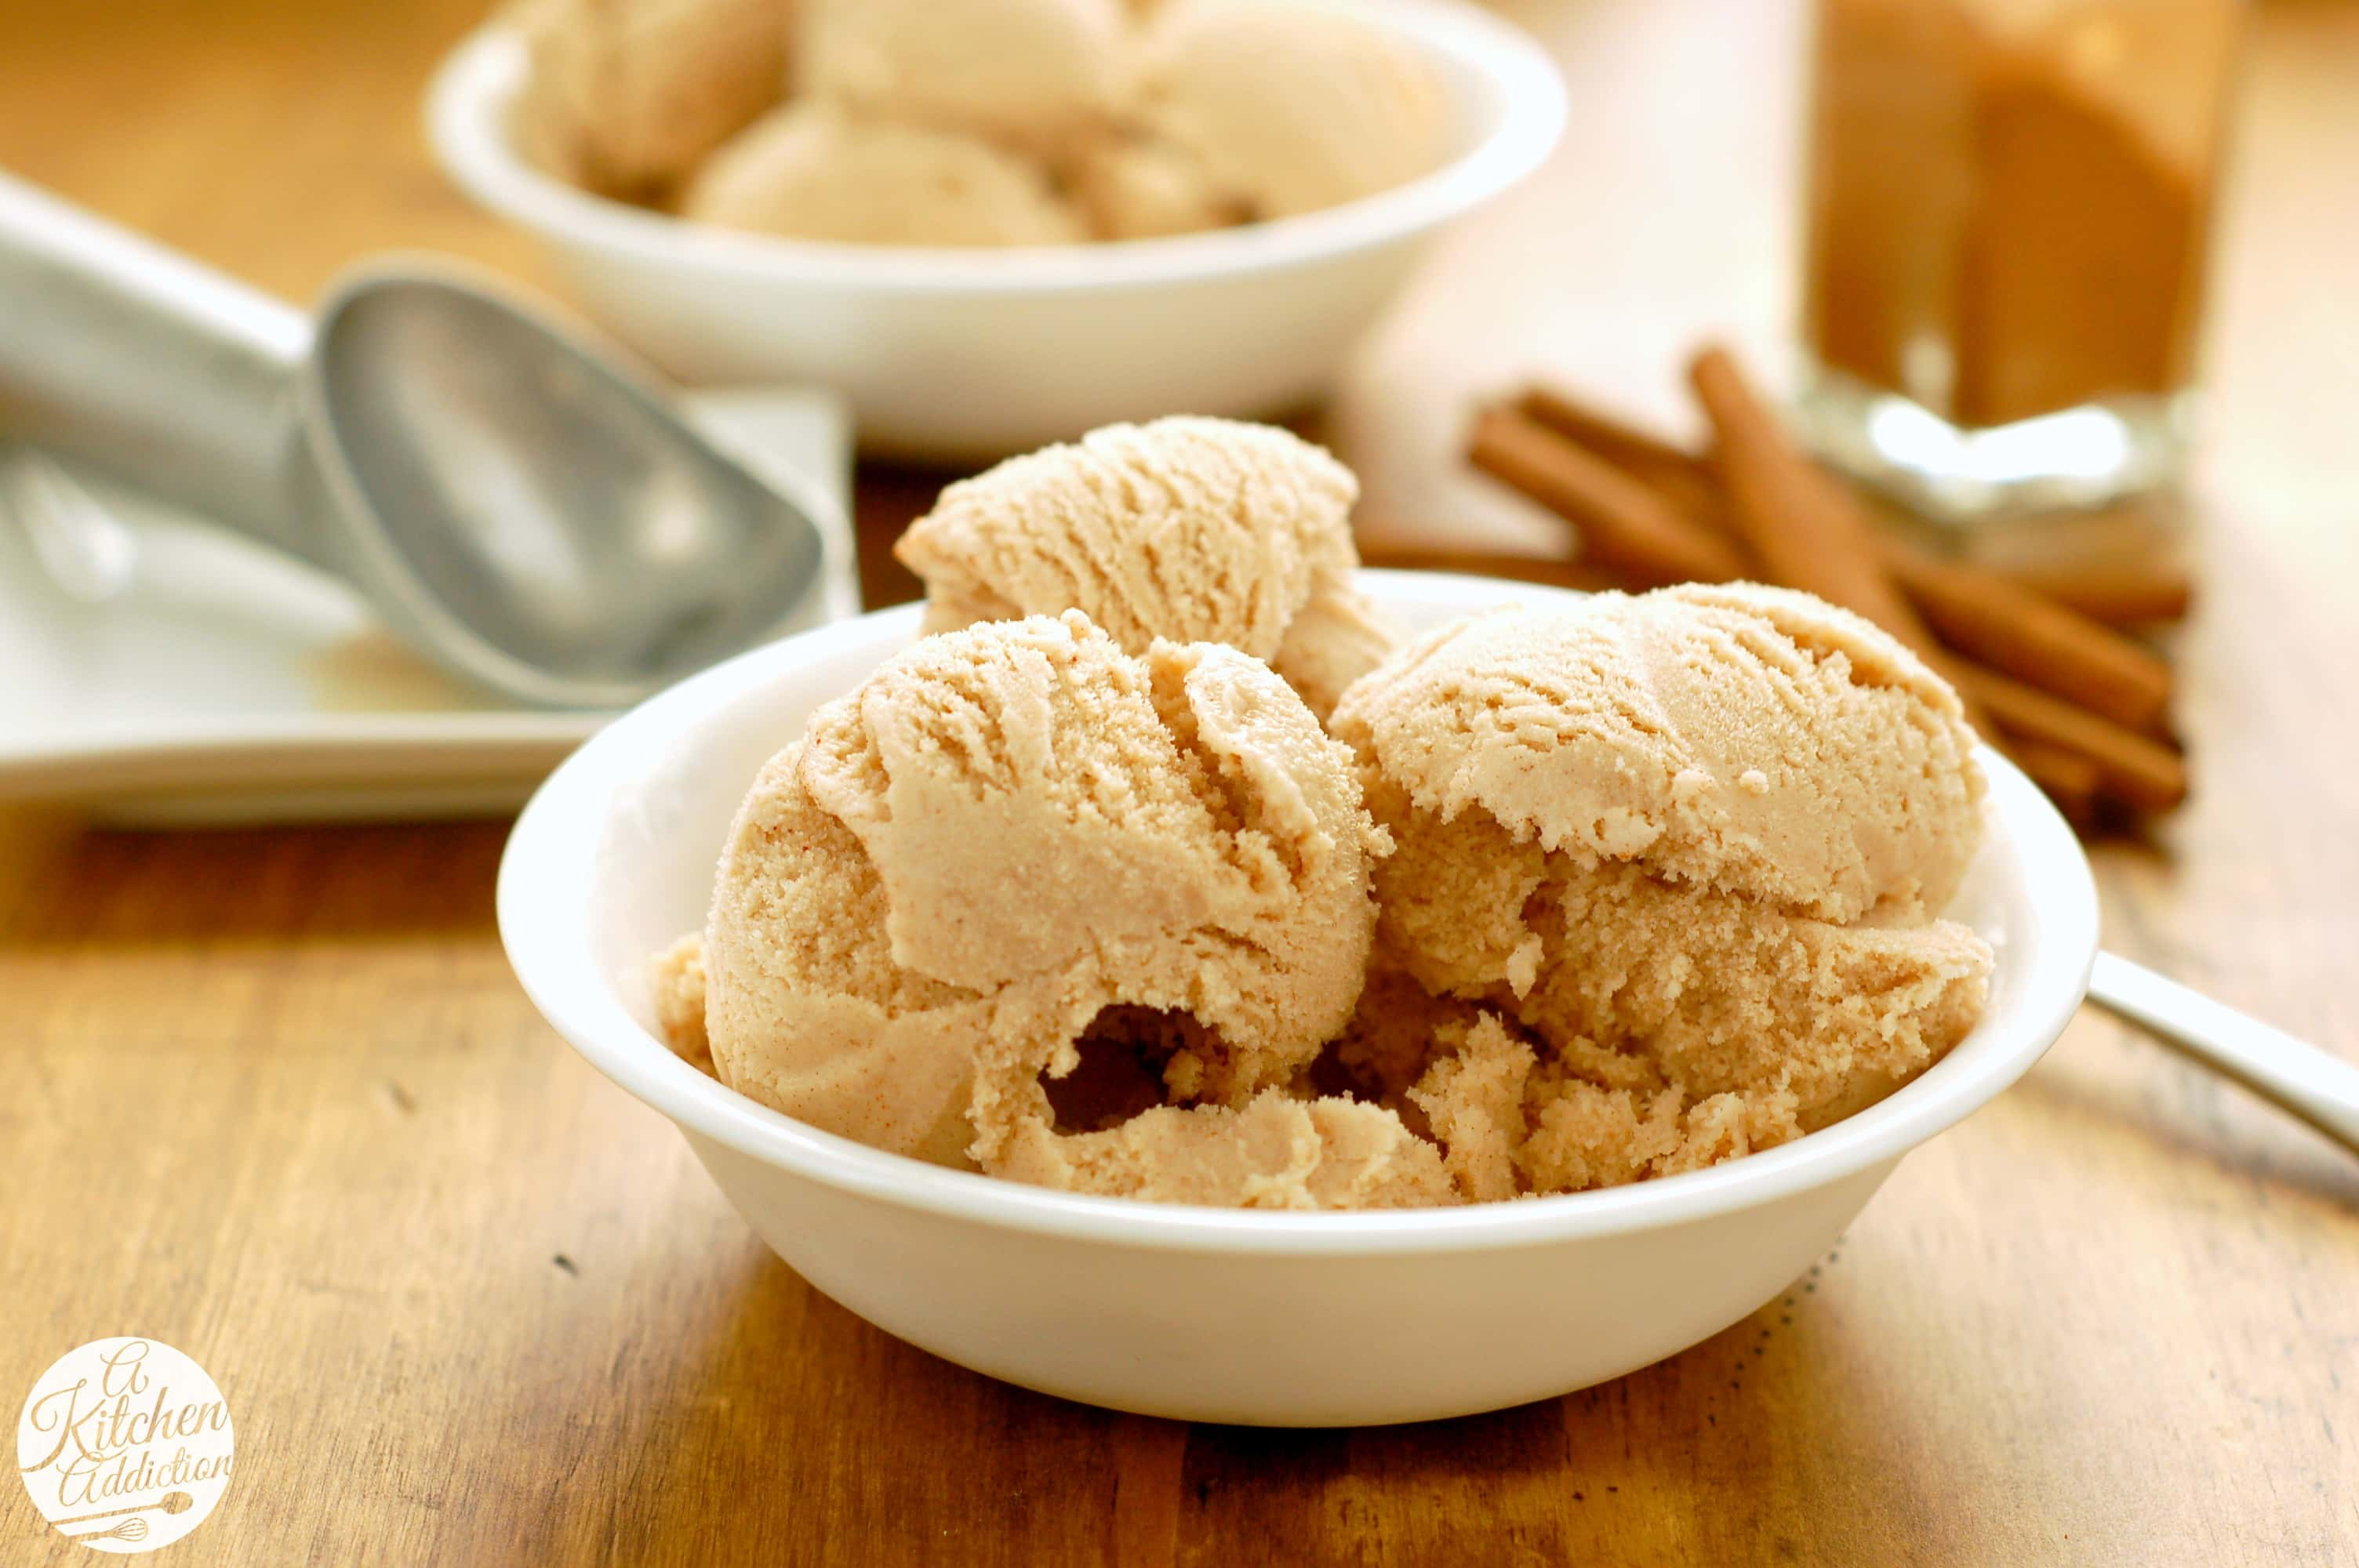 cinnamon ice cream glace au cinnamon ice cream cinnamon ice cream is a ...